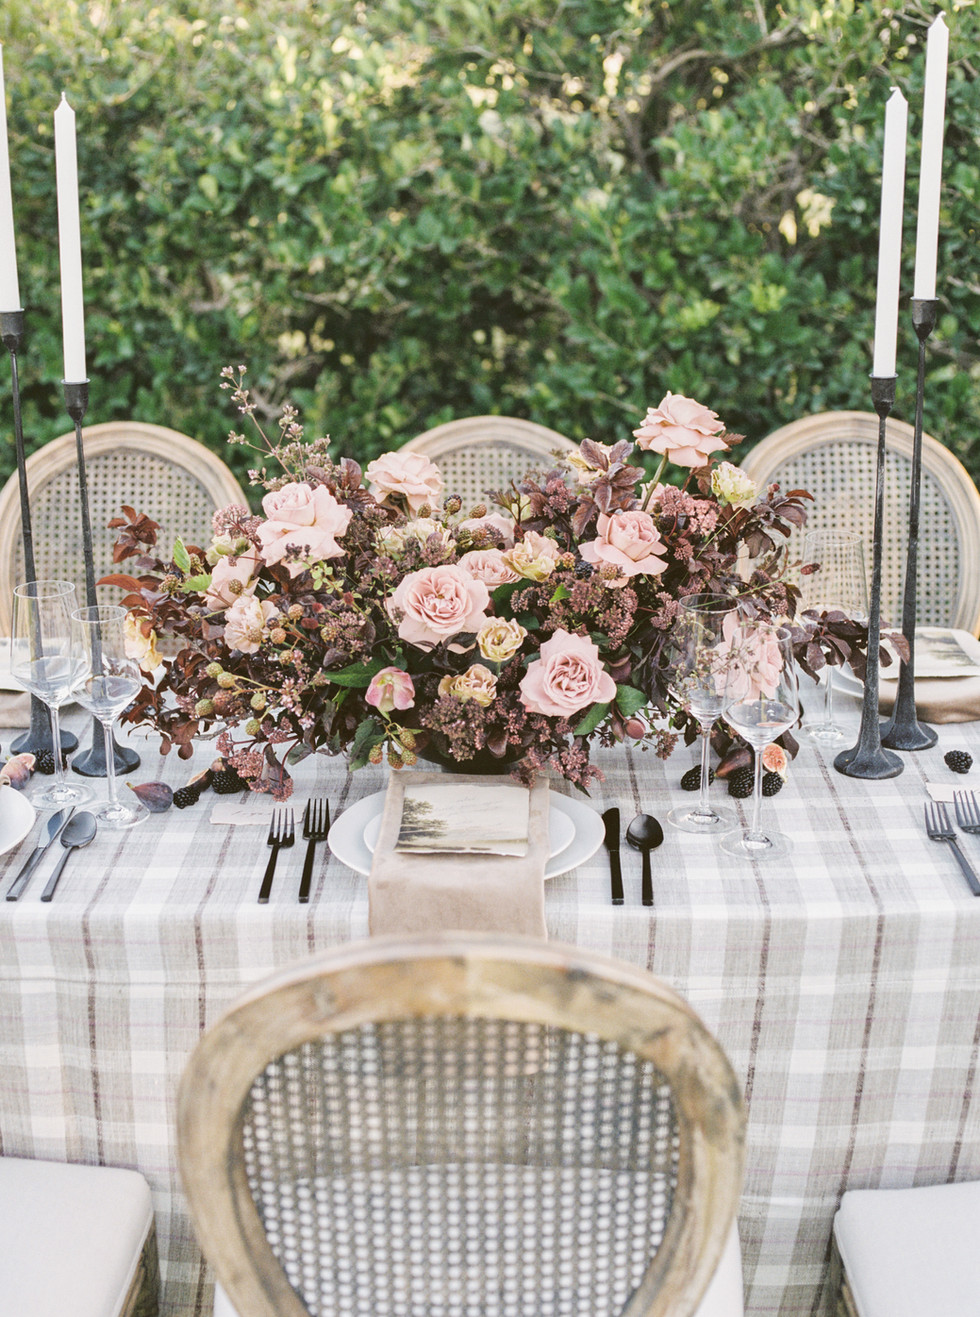 Dusty rose and brown centerpiece. Photo: Lianna Marie